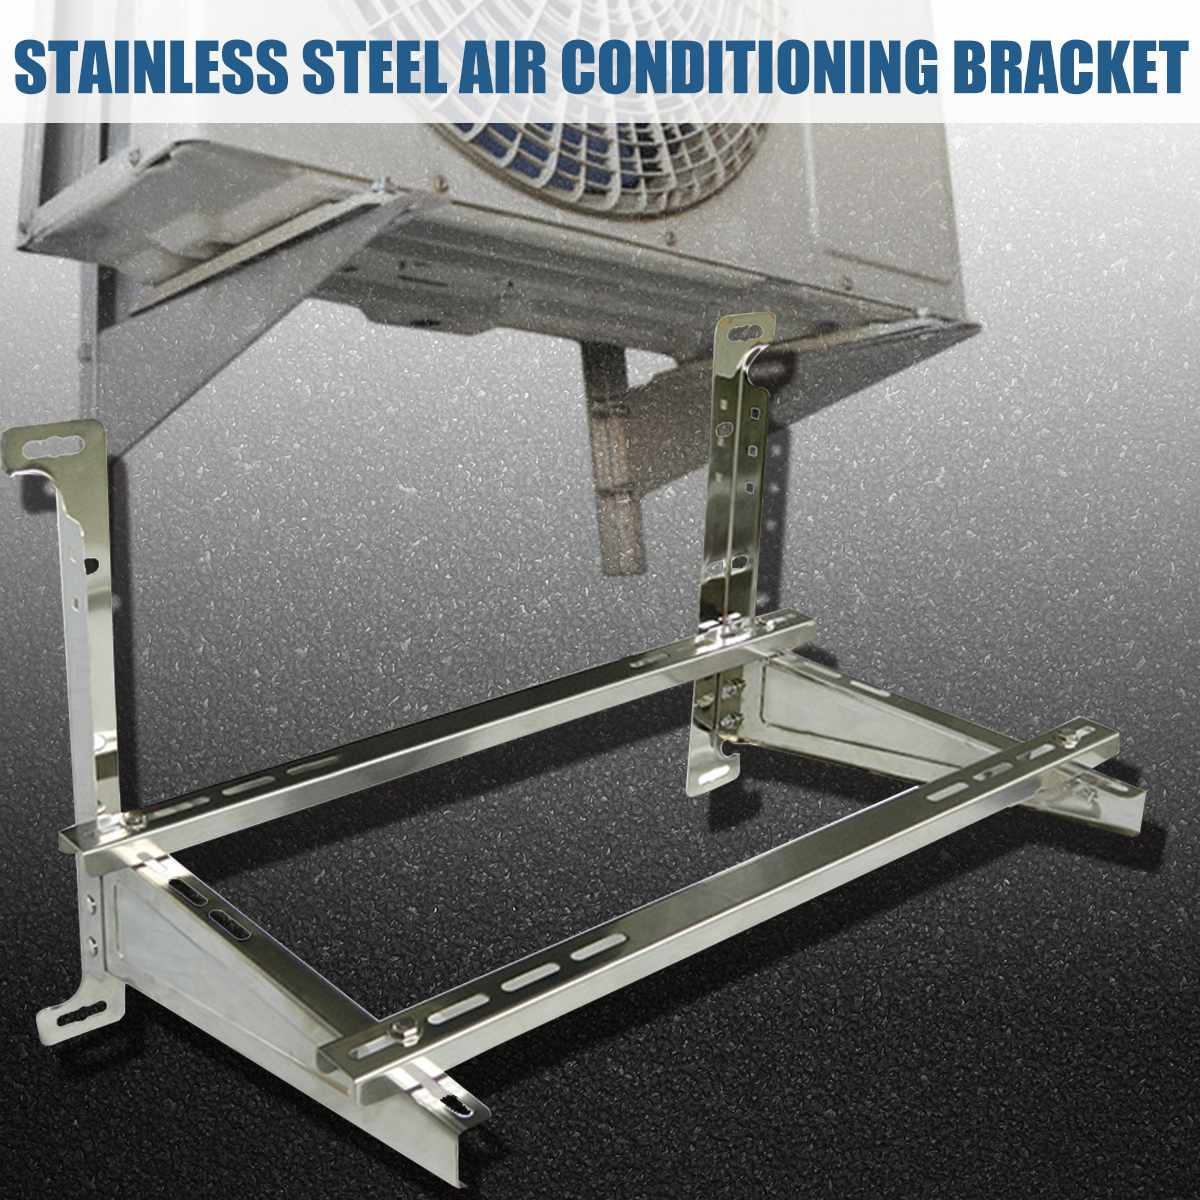 1 1.5P/3P Universal Outdoor AC Bracket for Air Conditioner Support Bracket Air Conditioner Wall Mount Stainless Steel|Air Conditioner Parts| |  - title=